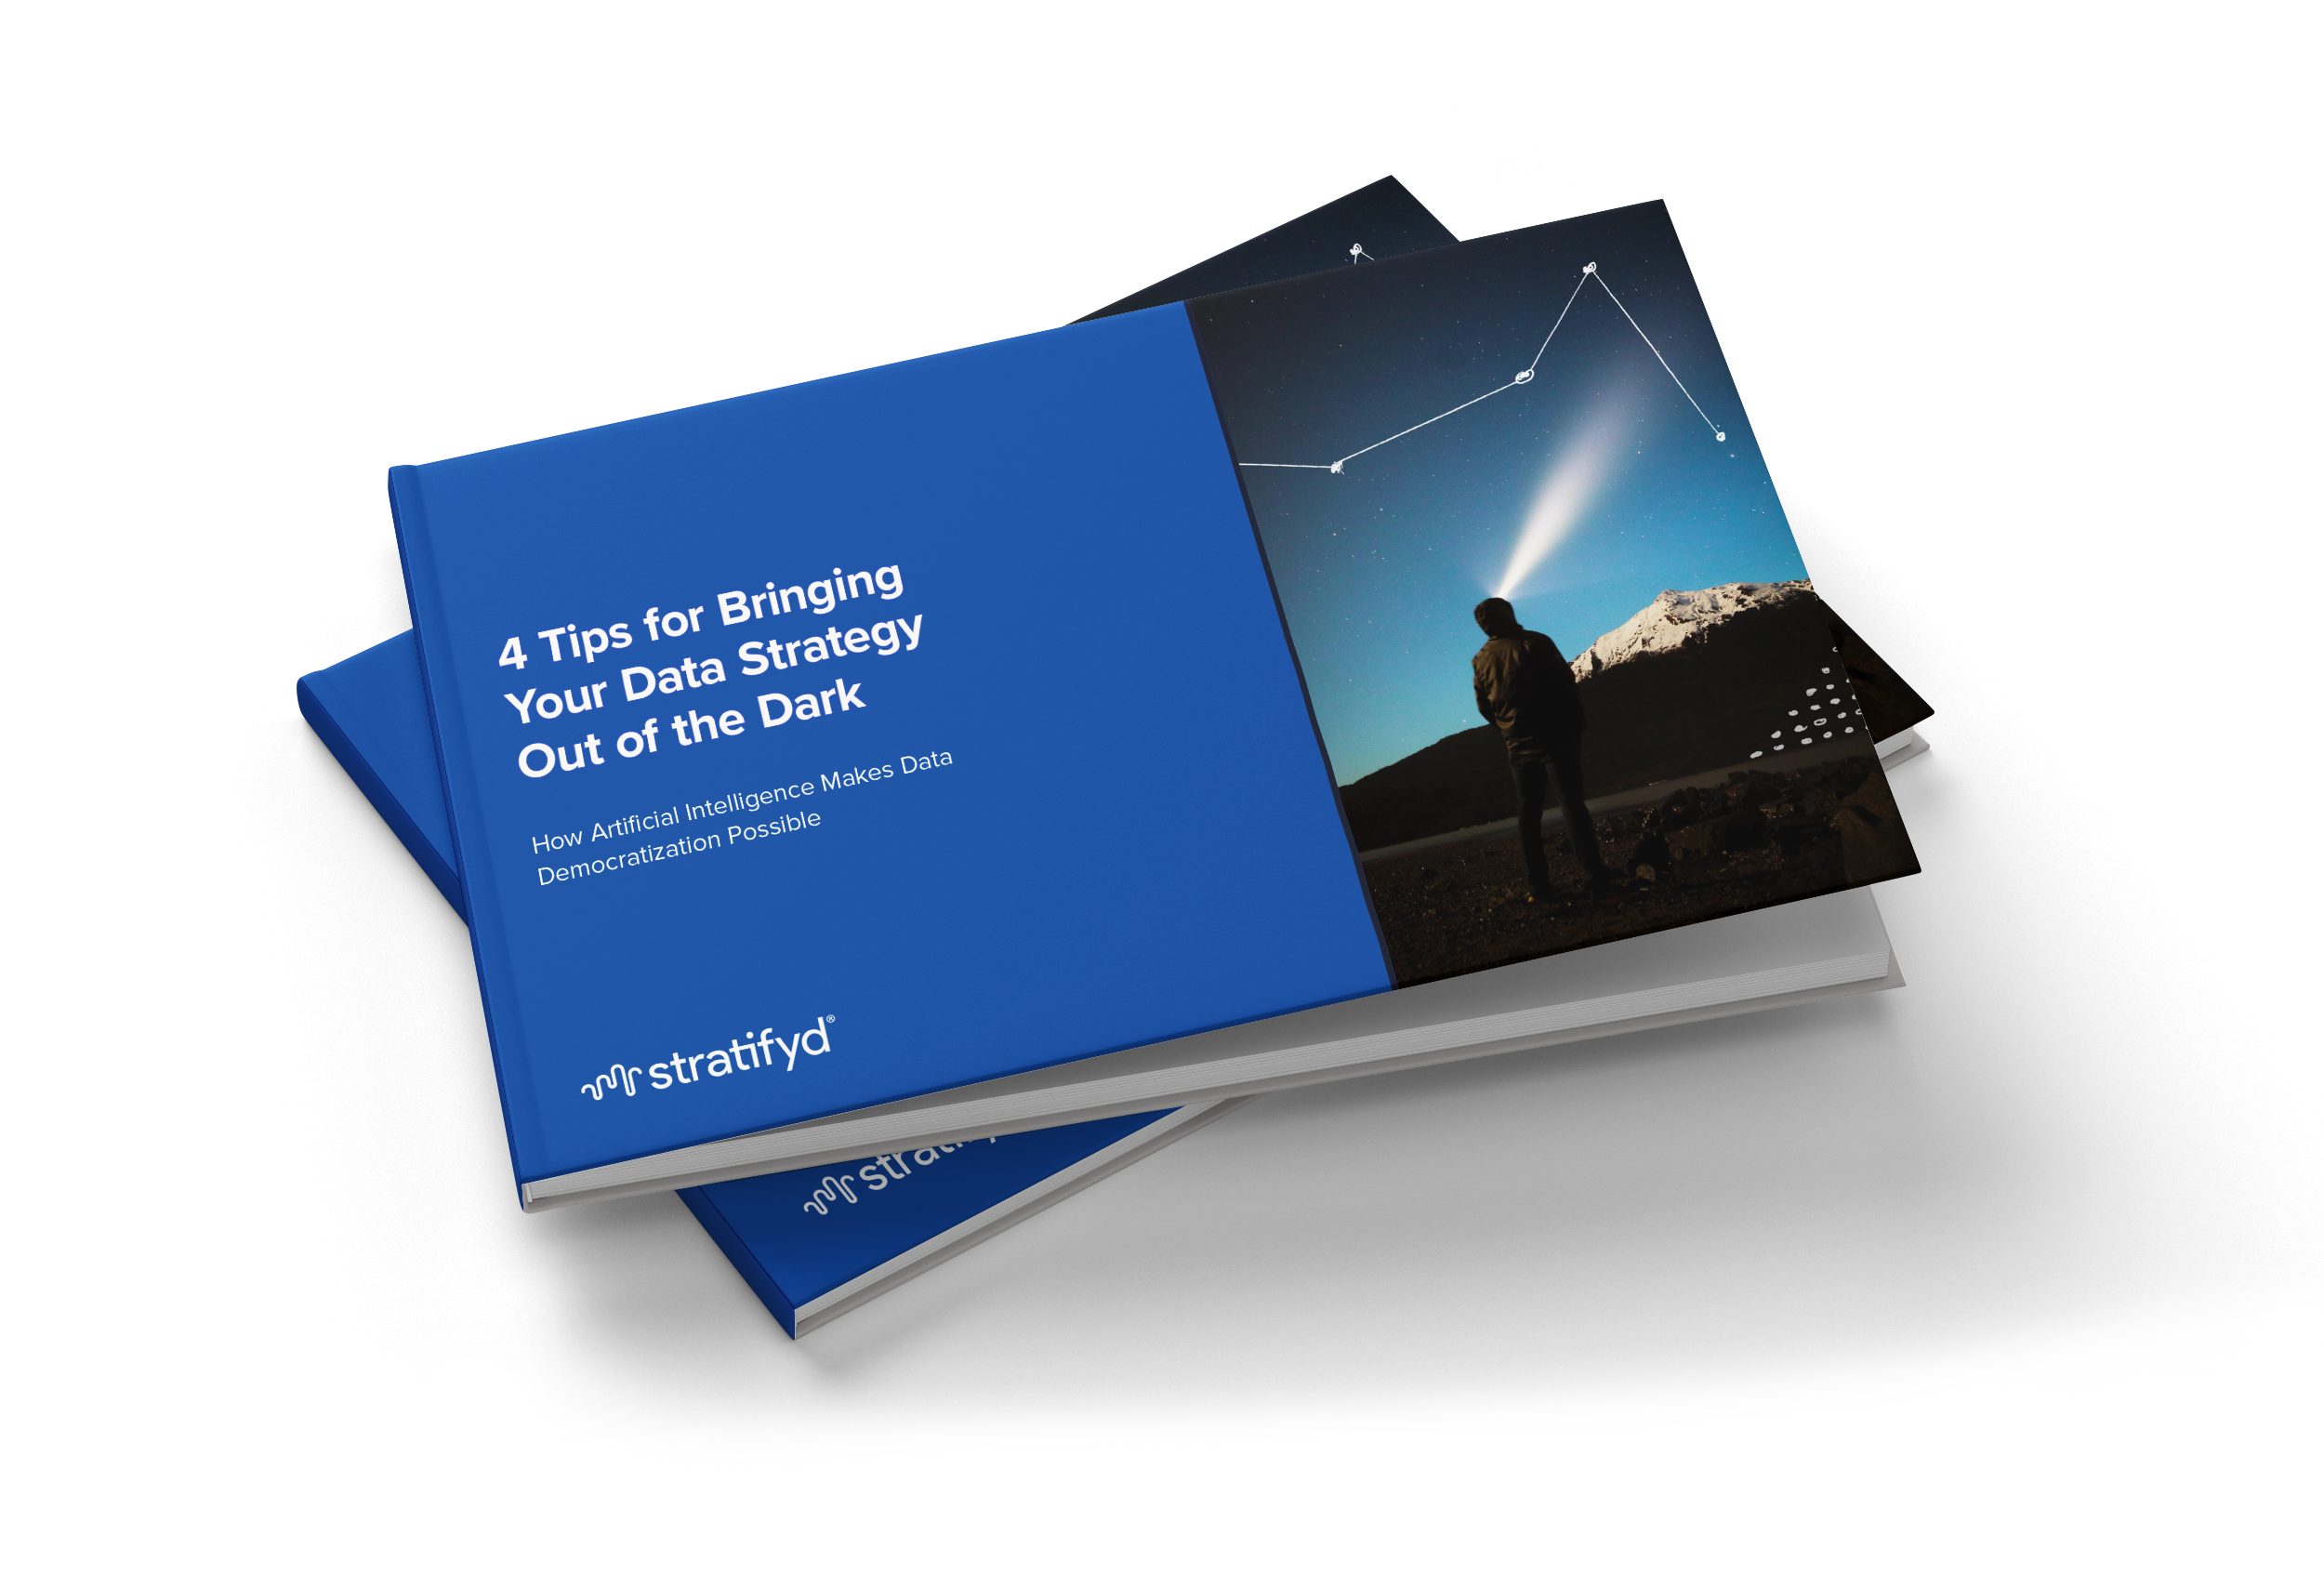 4 Tips for Bringing Your Data Strategy Out of the Dark eBook